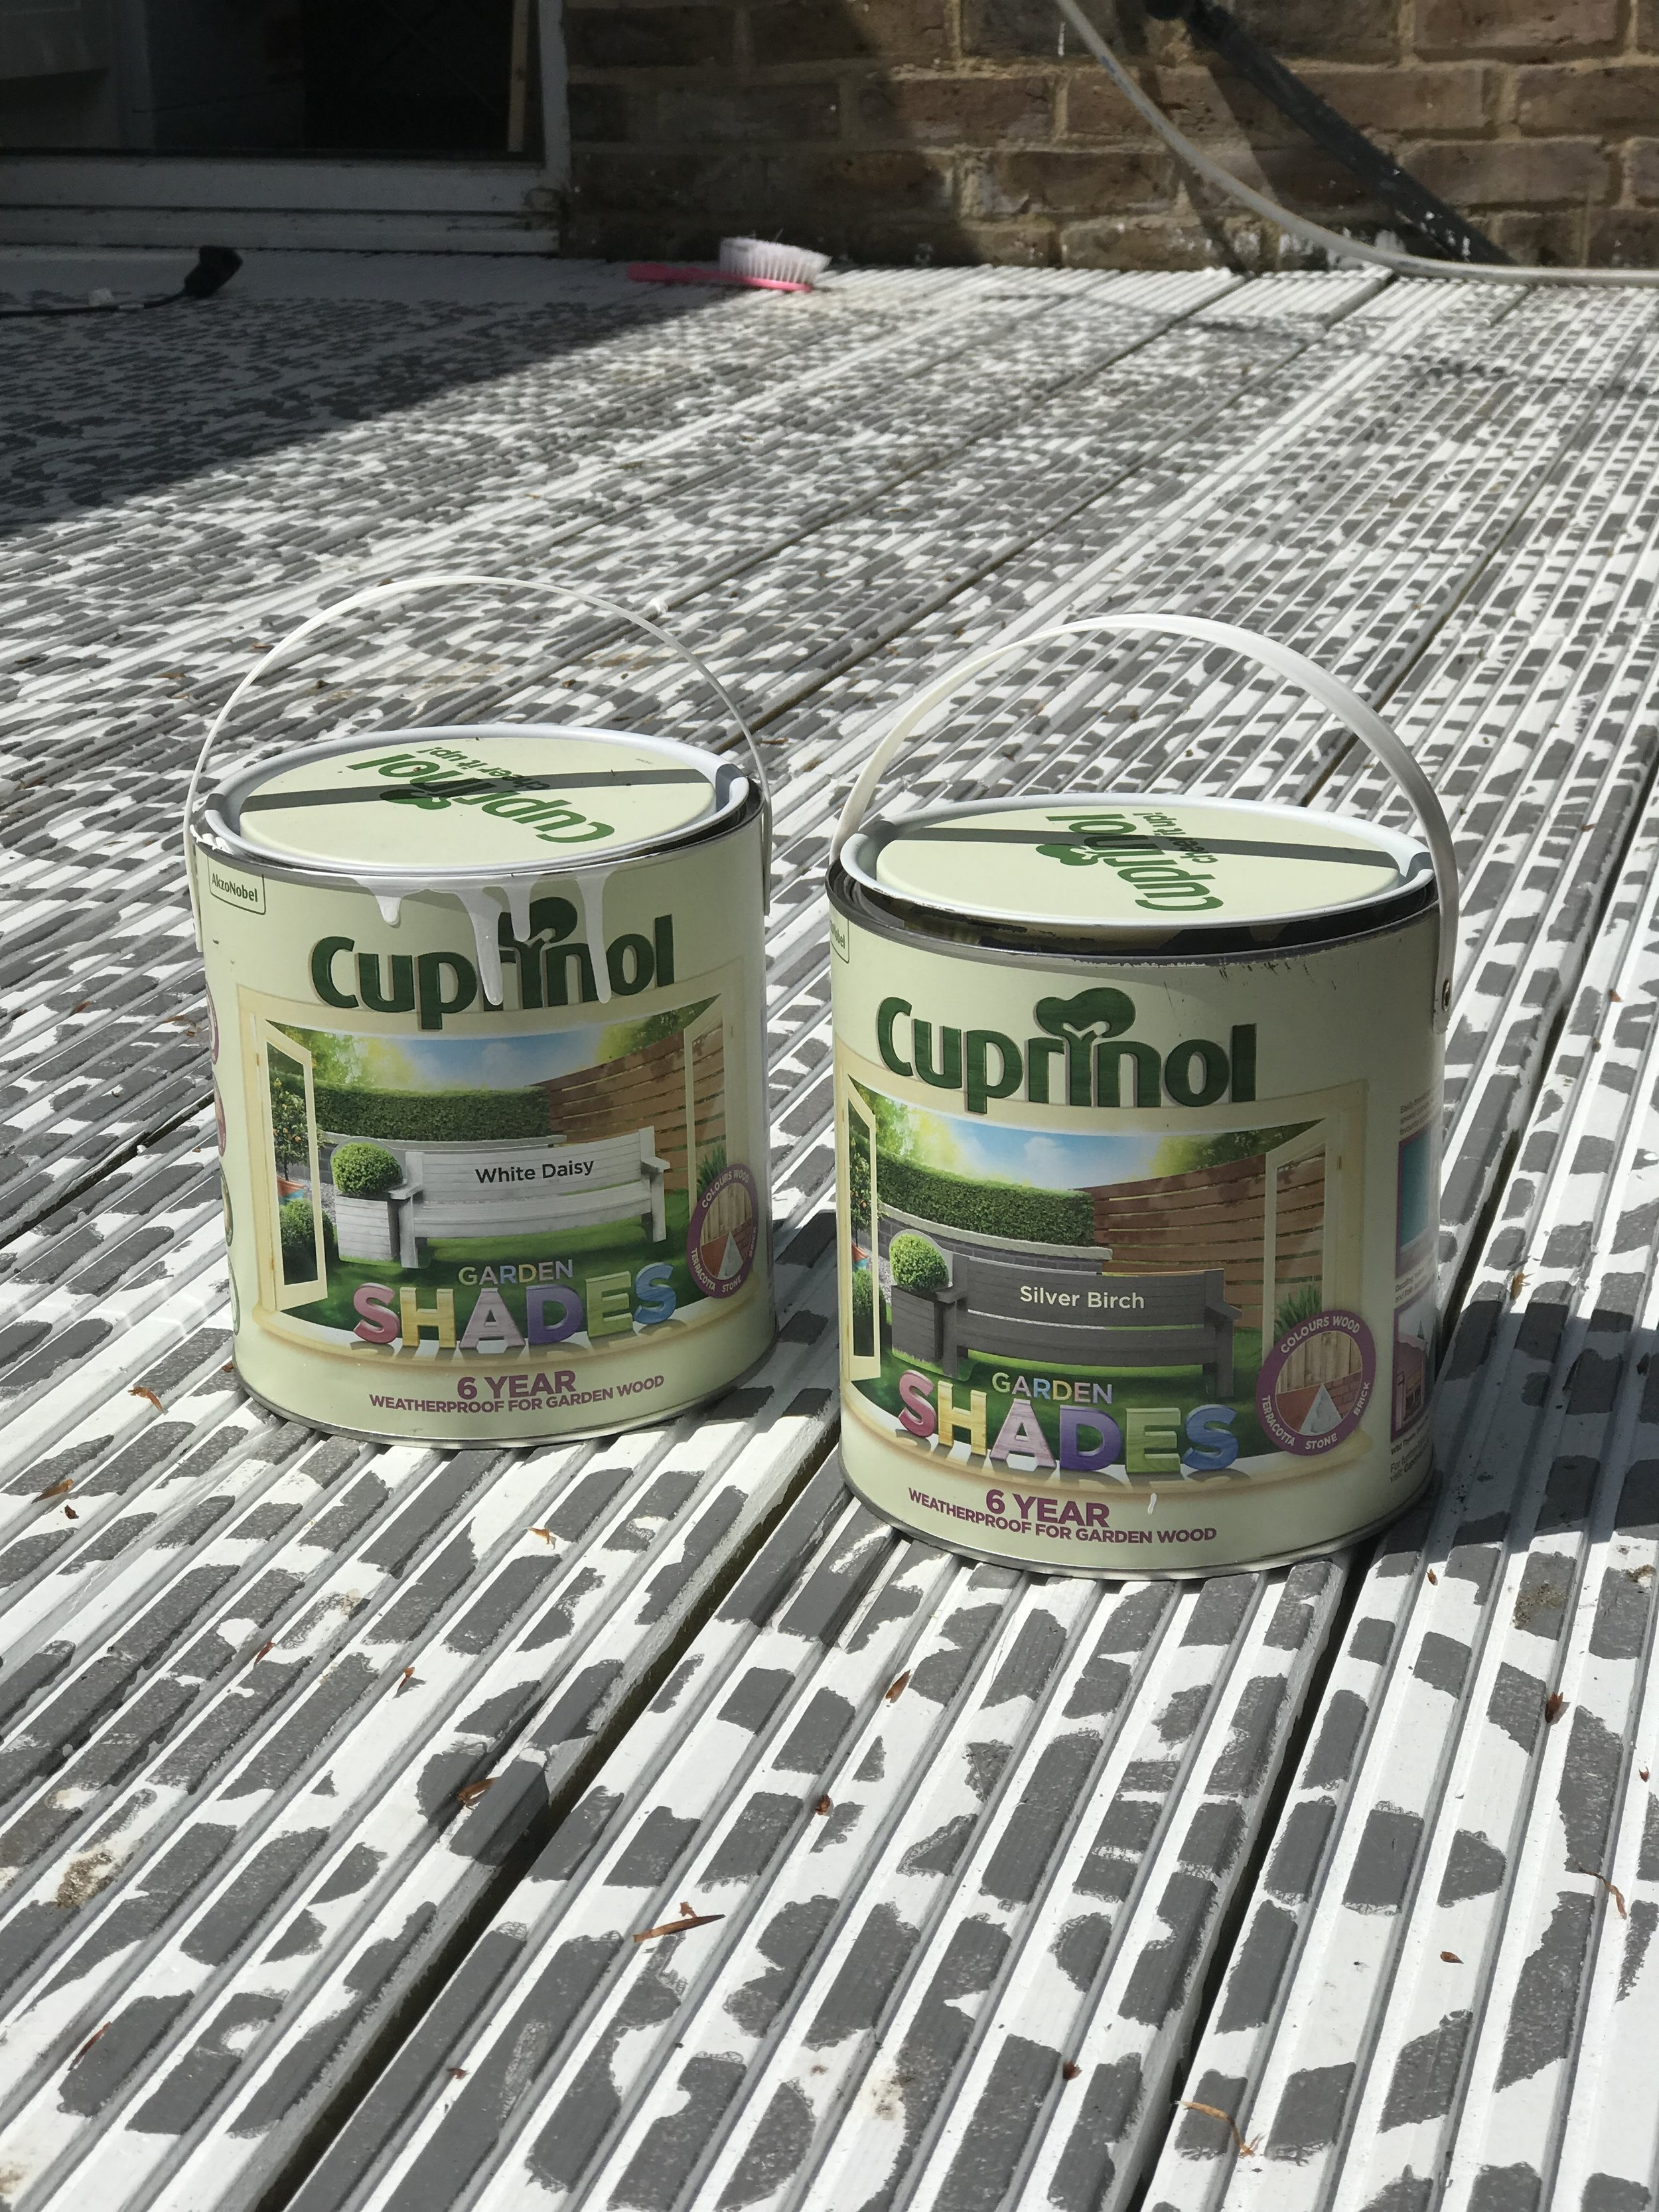 Cuprinol  have some great shades for your garden including Natures Neutrals and Natures Brights